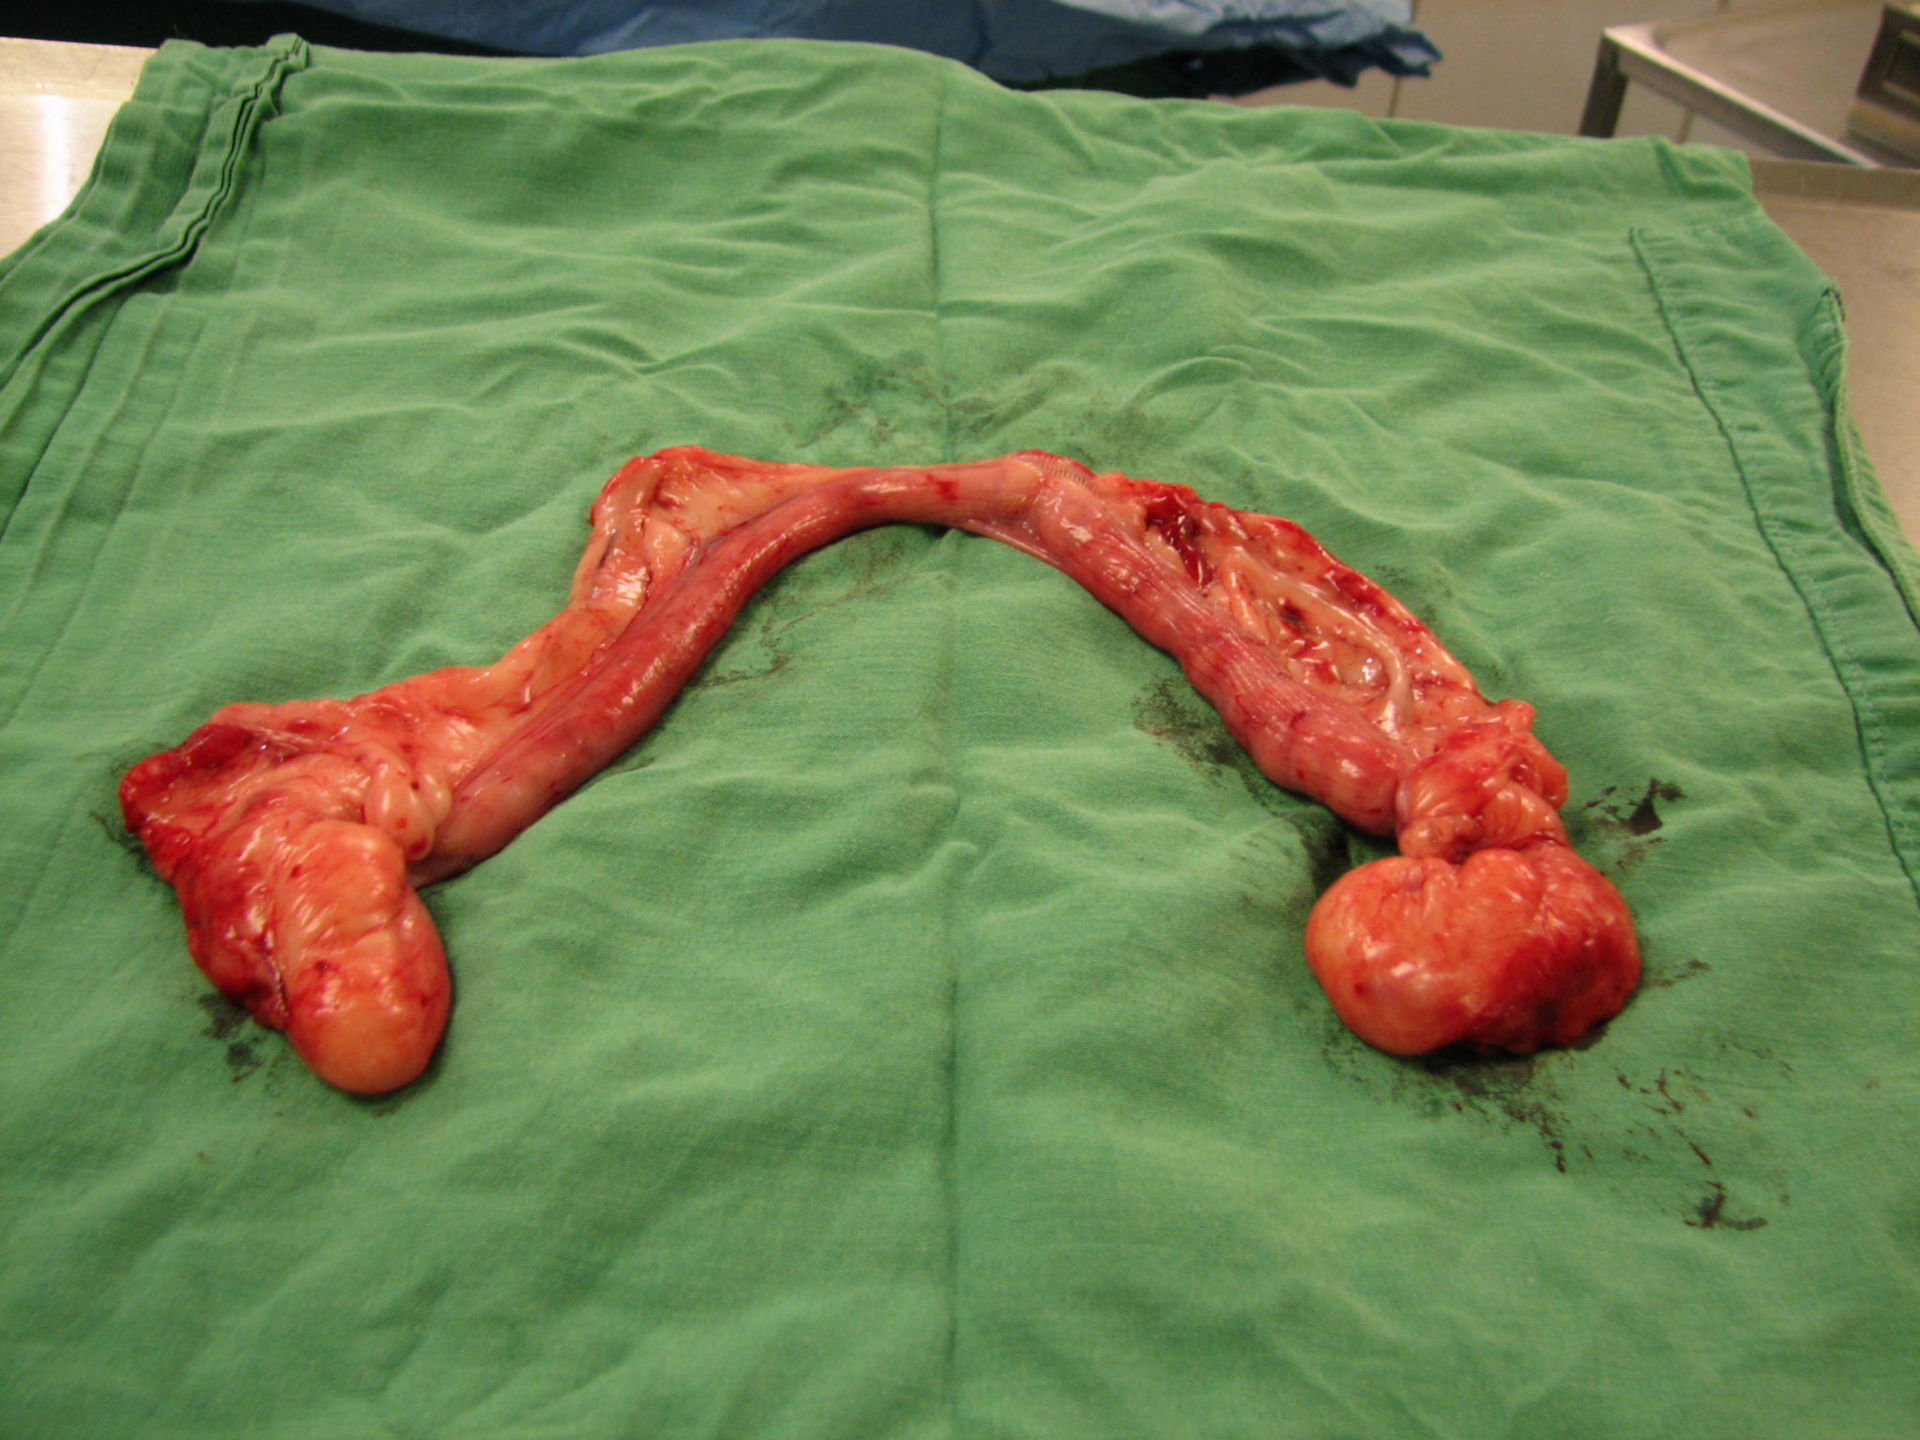 Hysterectomy and adnexectomy on both sides of a she-dog